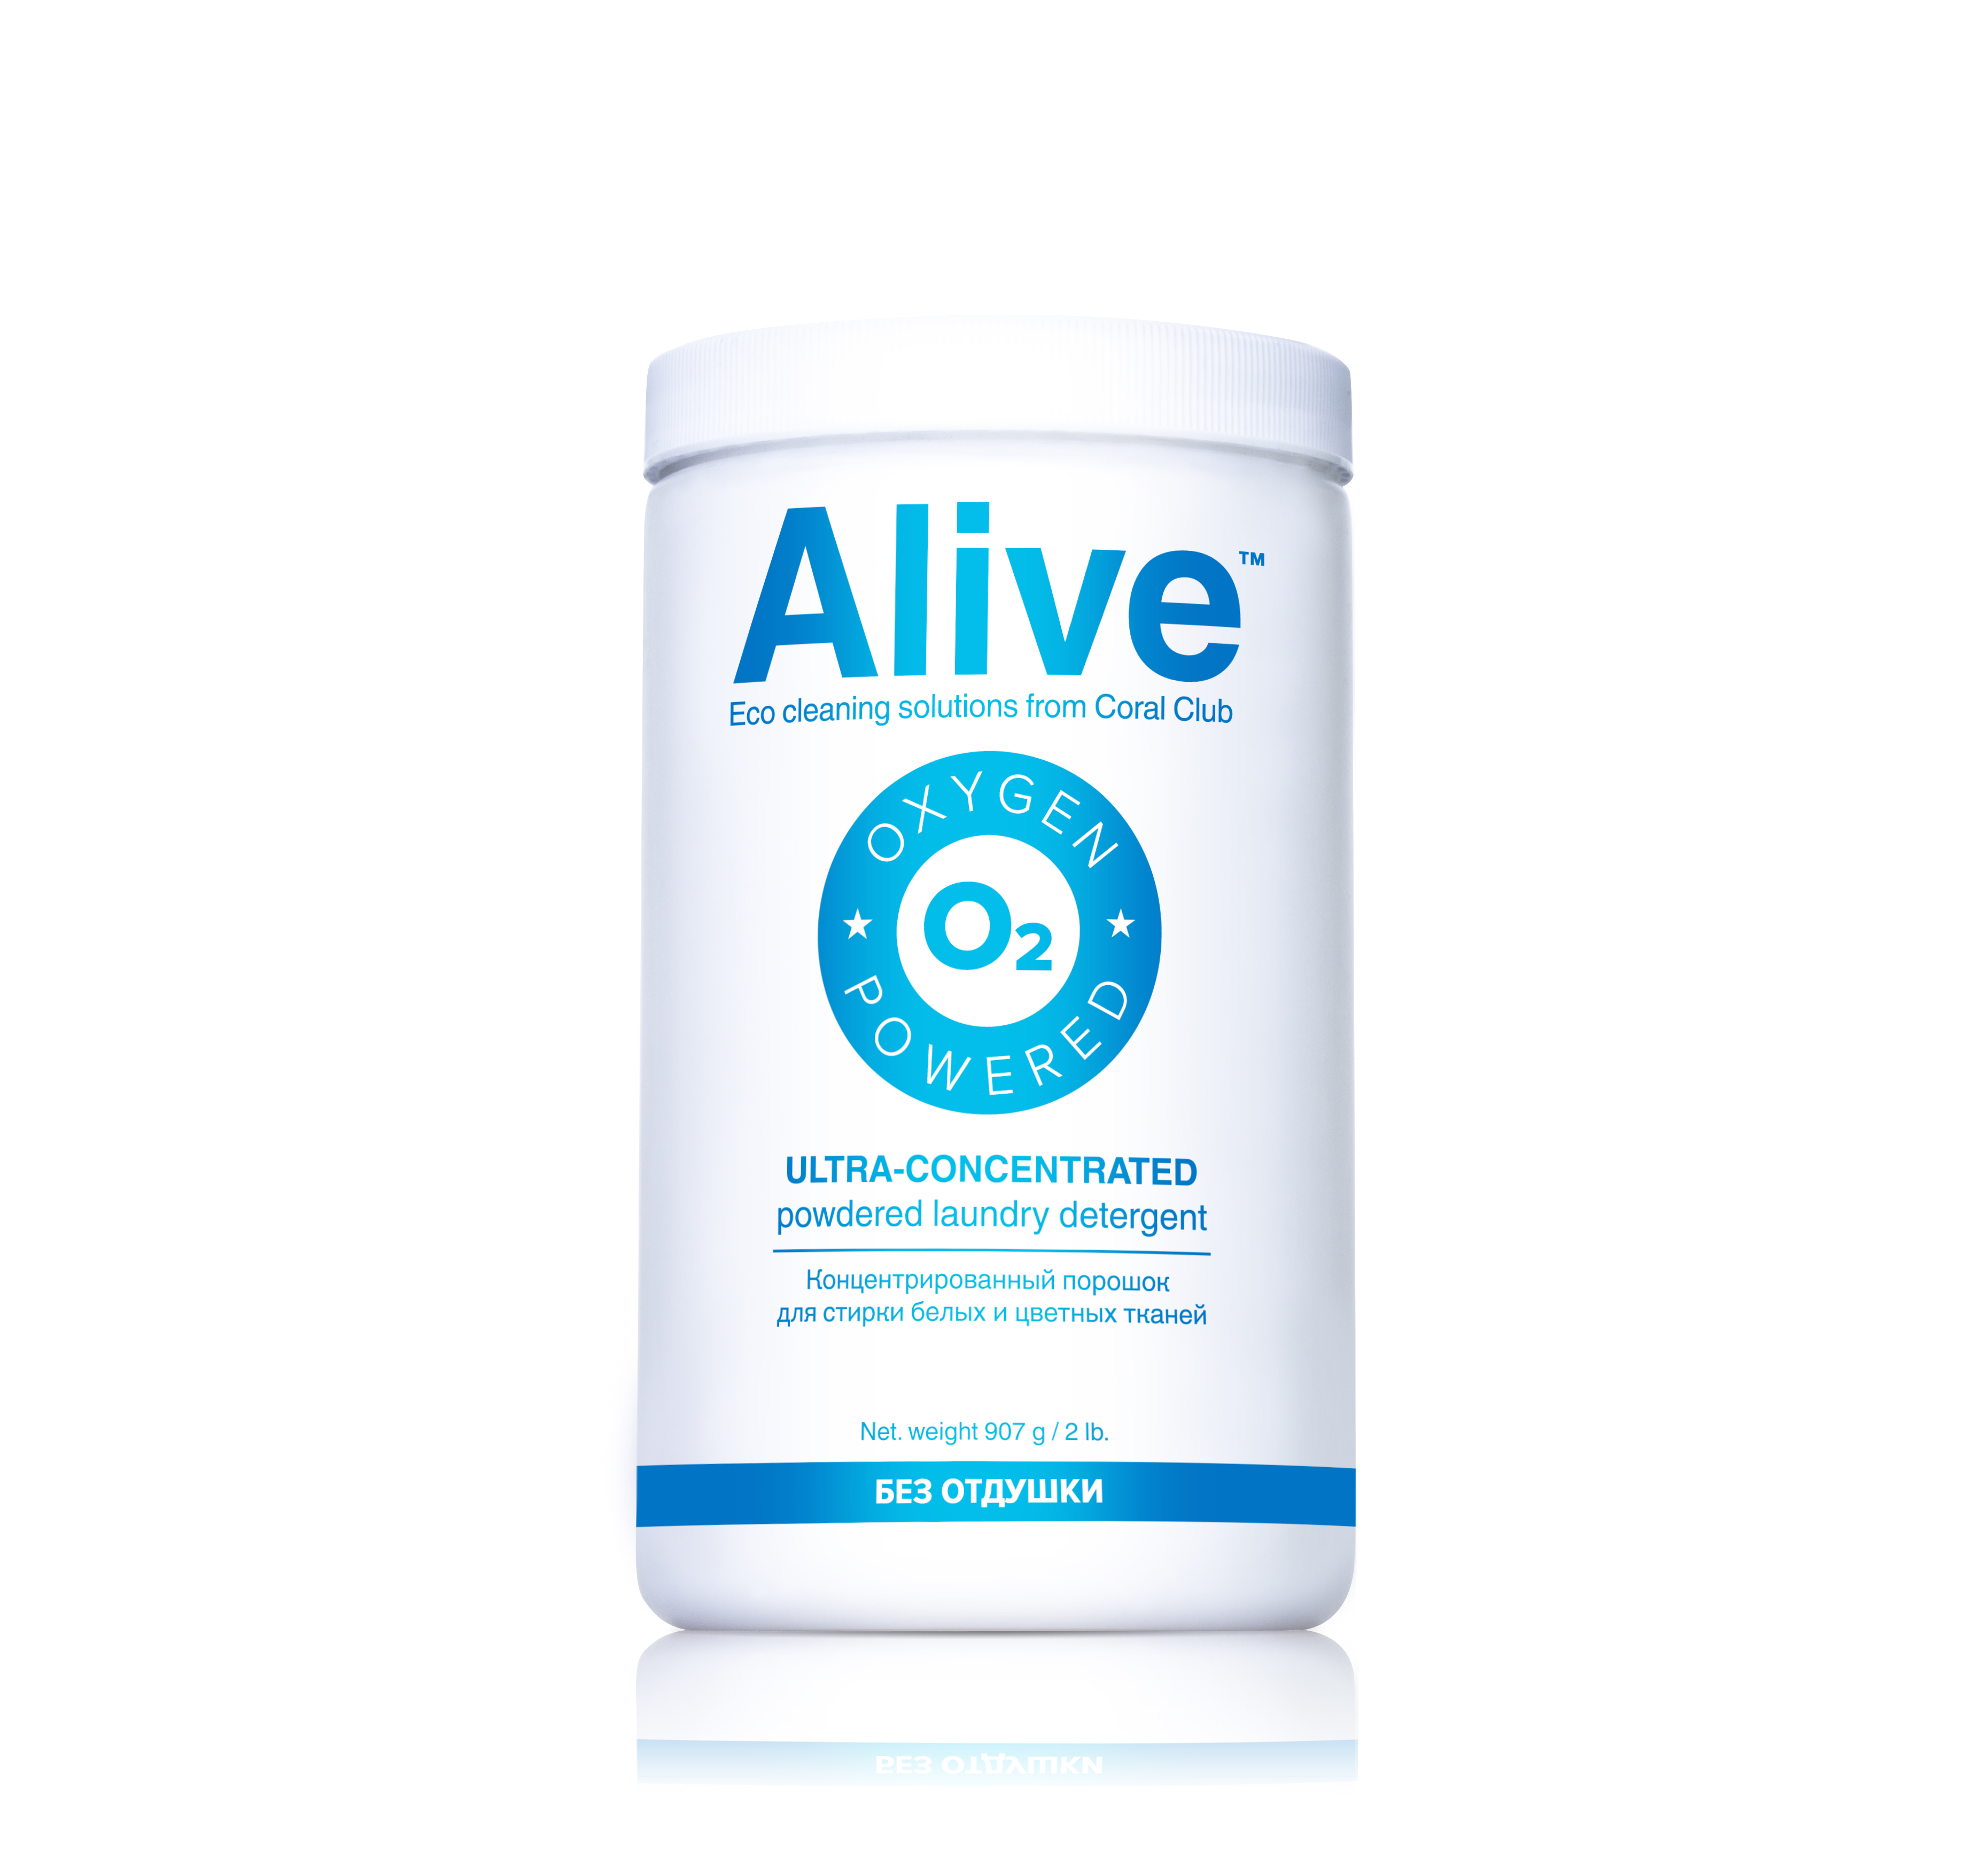 Buy Alive powdered laundry detergent